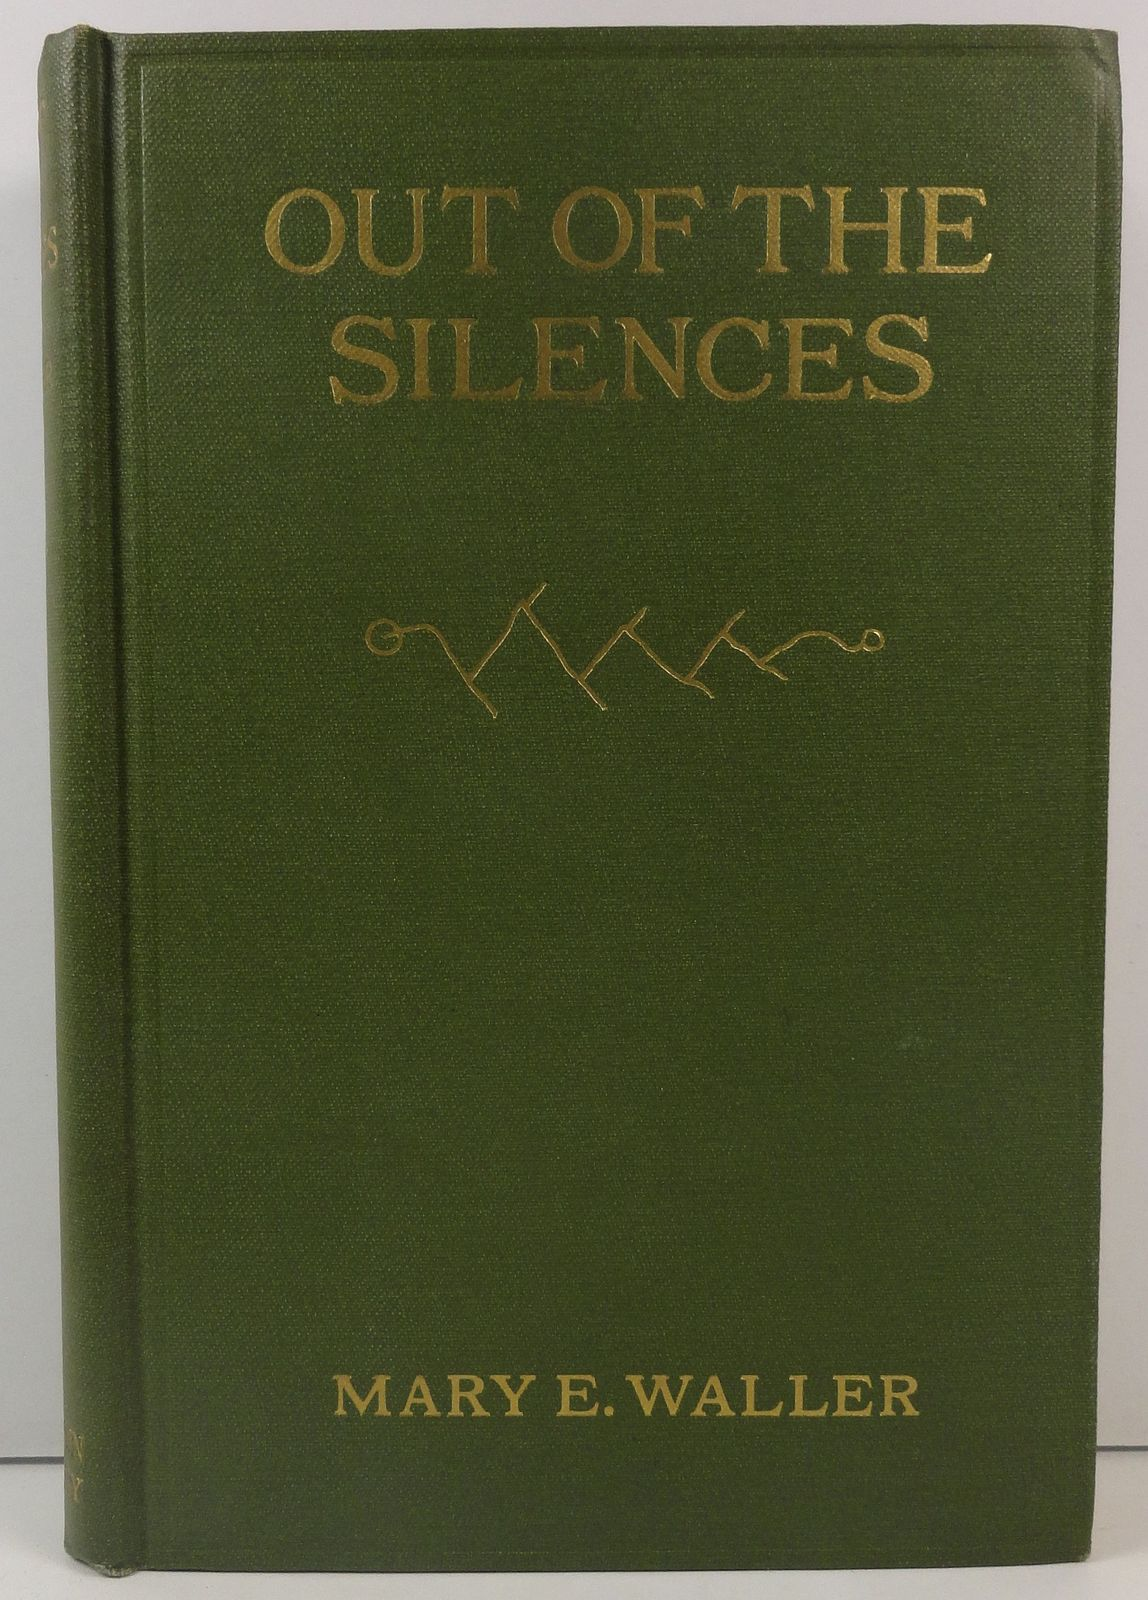 Out of the Silences by Mary E. Waller 1918 Little, Brown